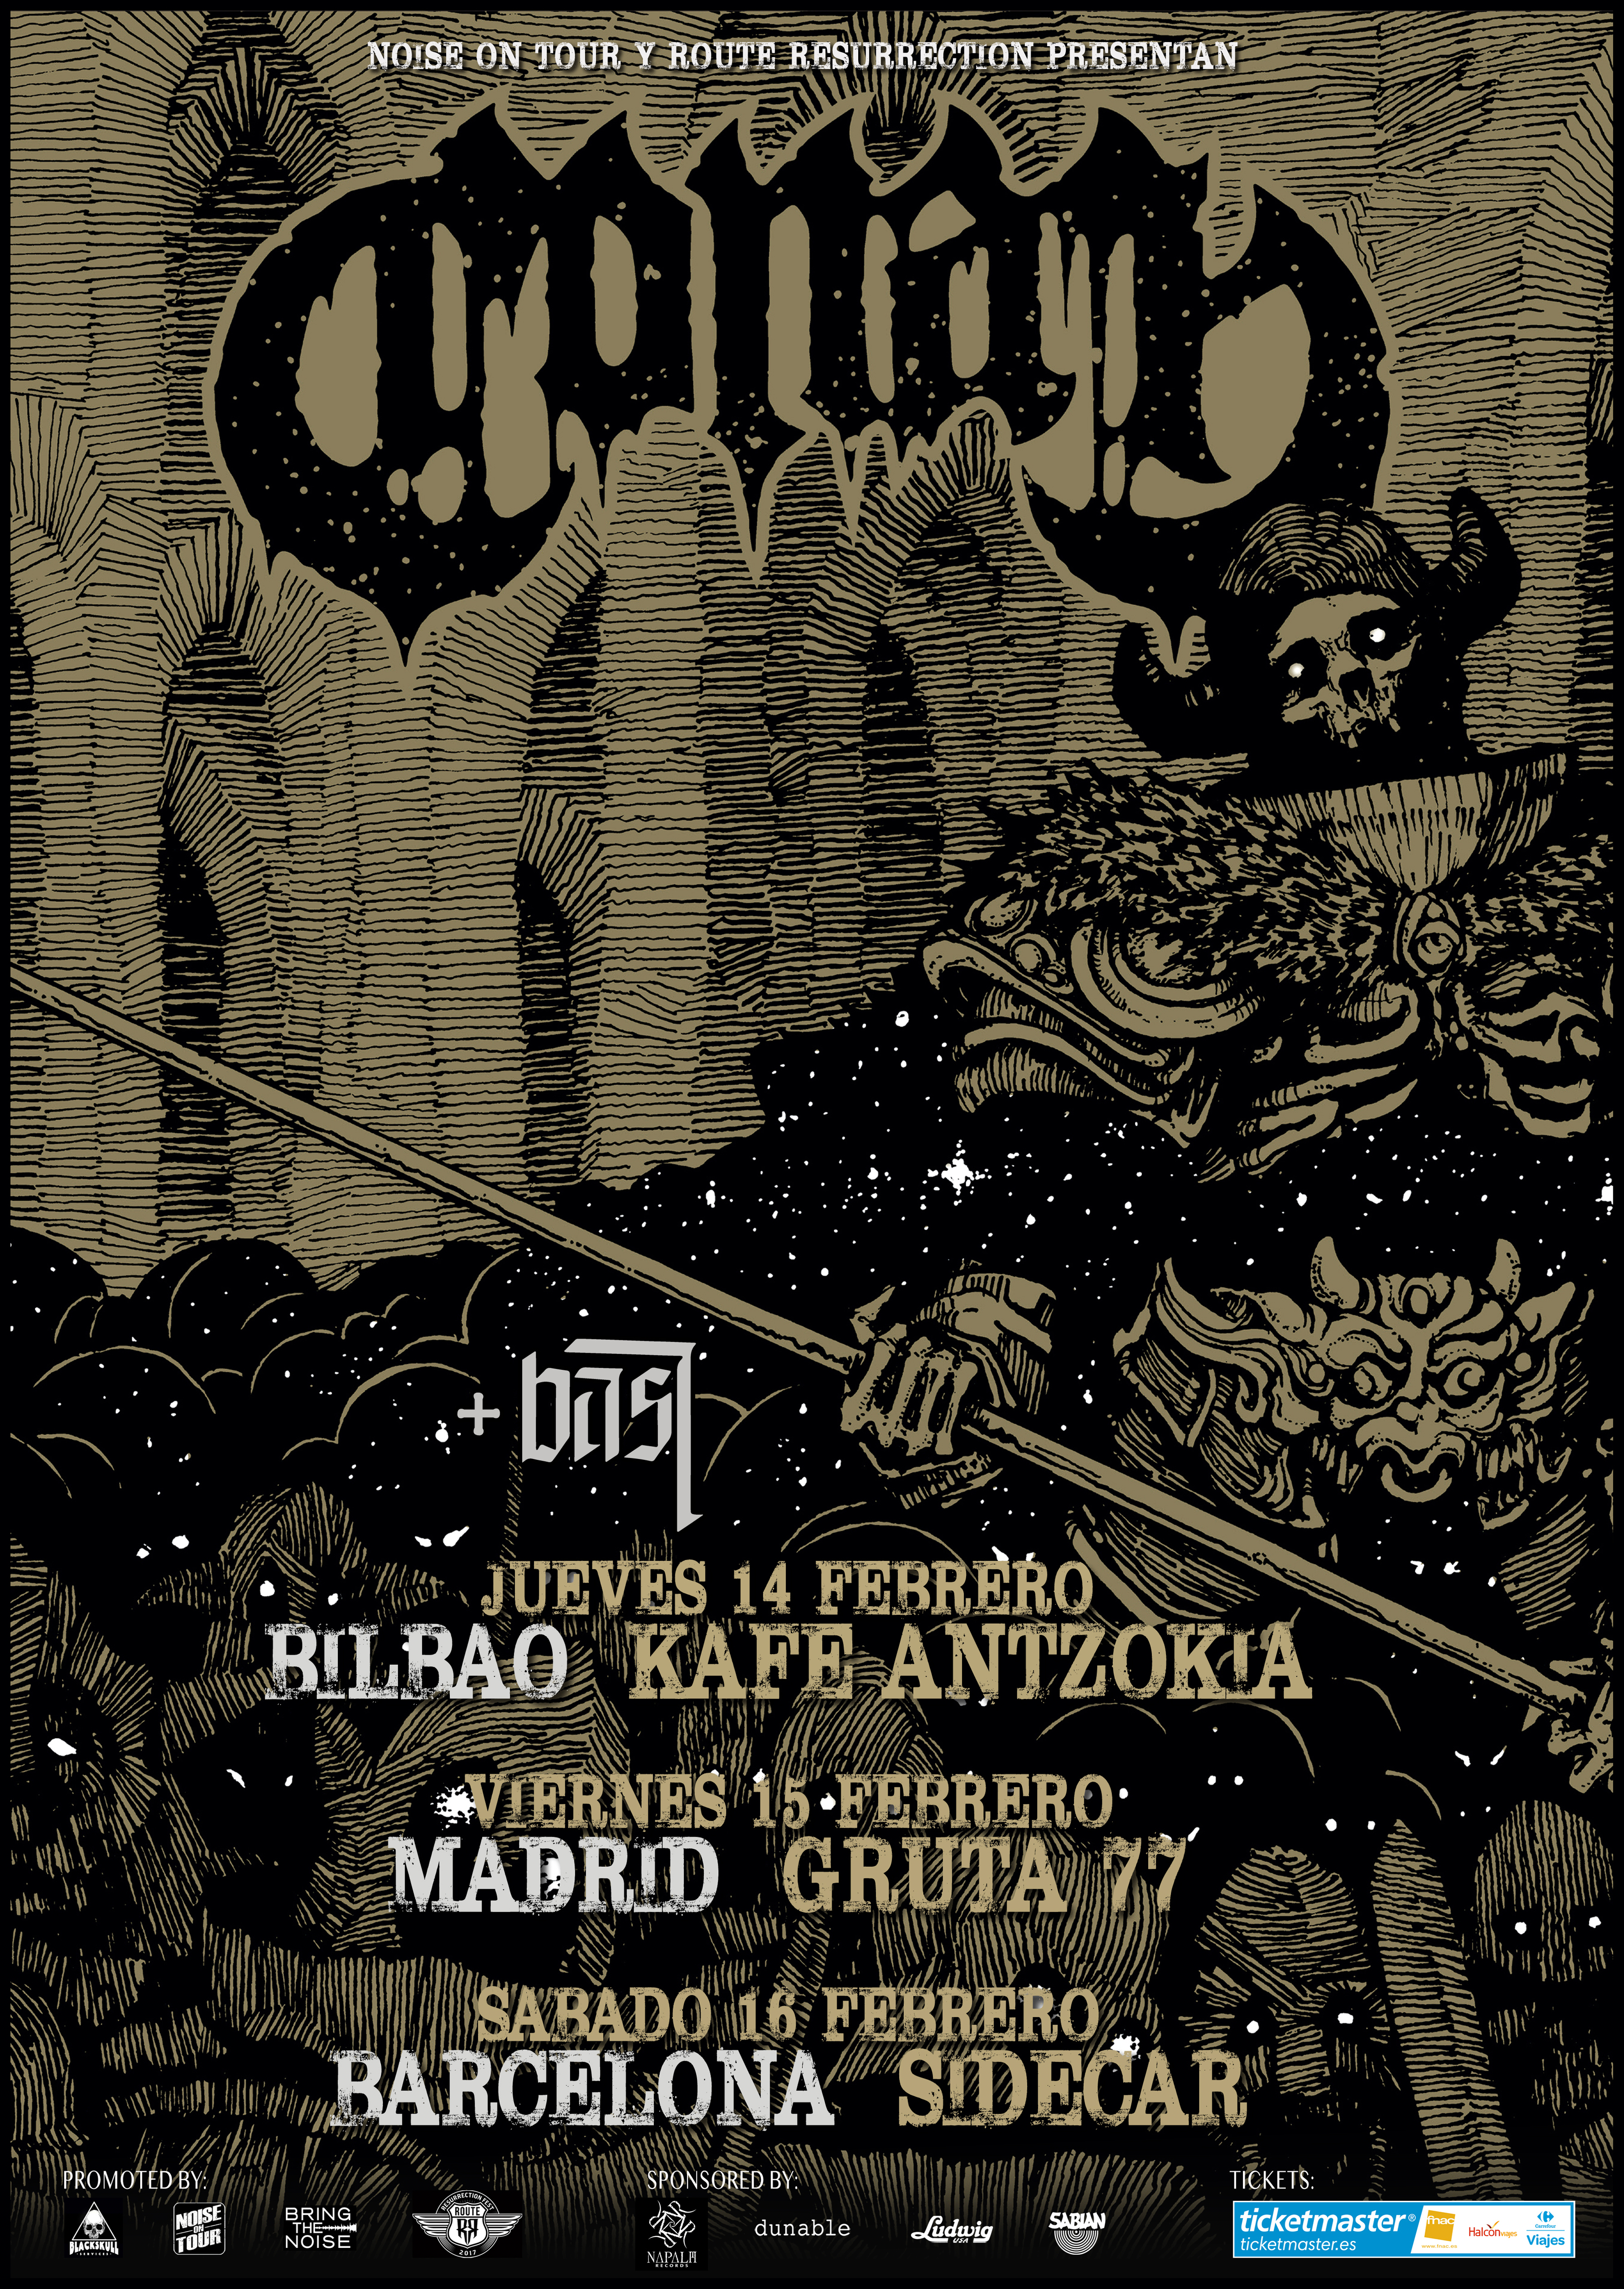 Route Resurrection 2019: Conan (Bilbao)